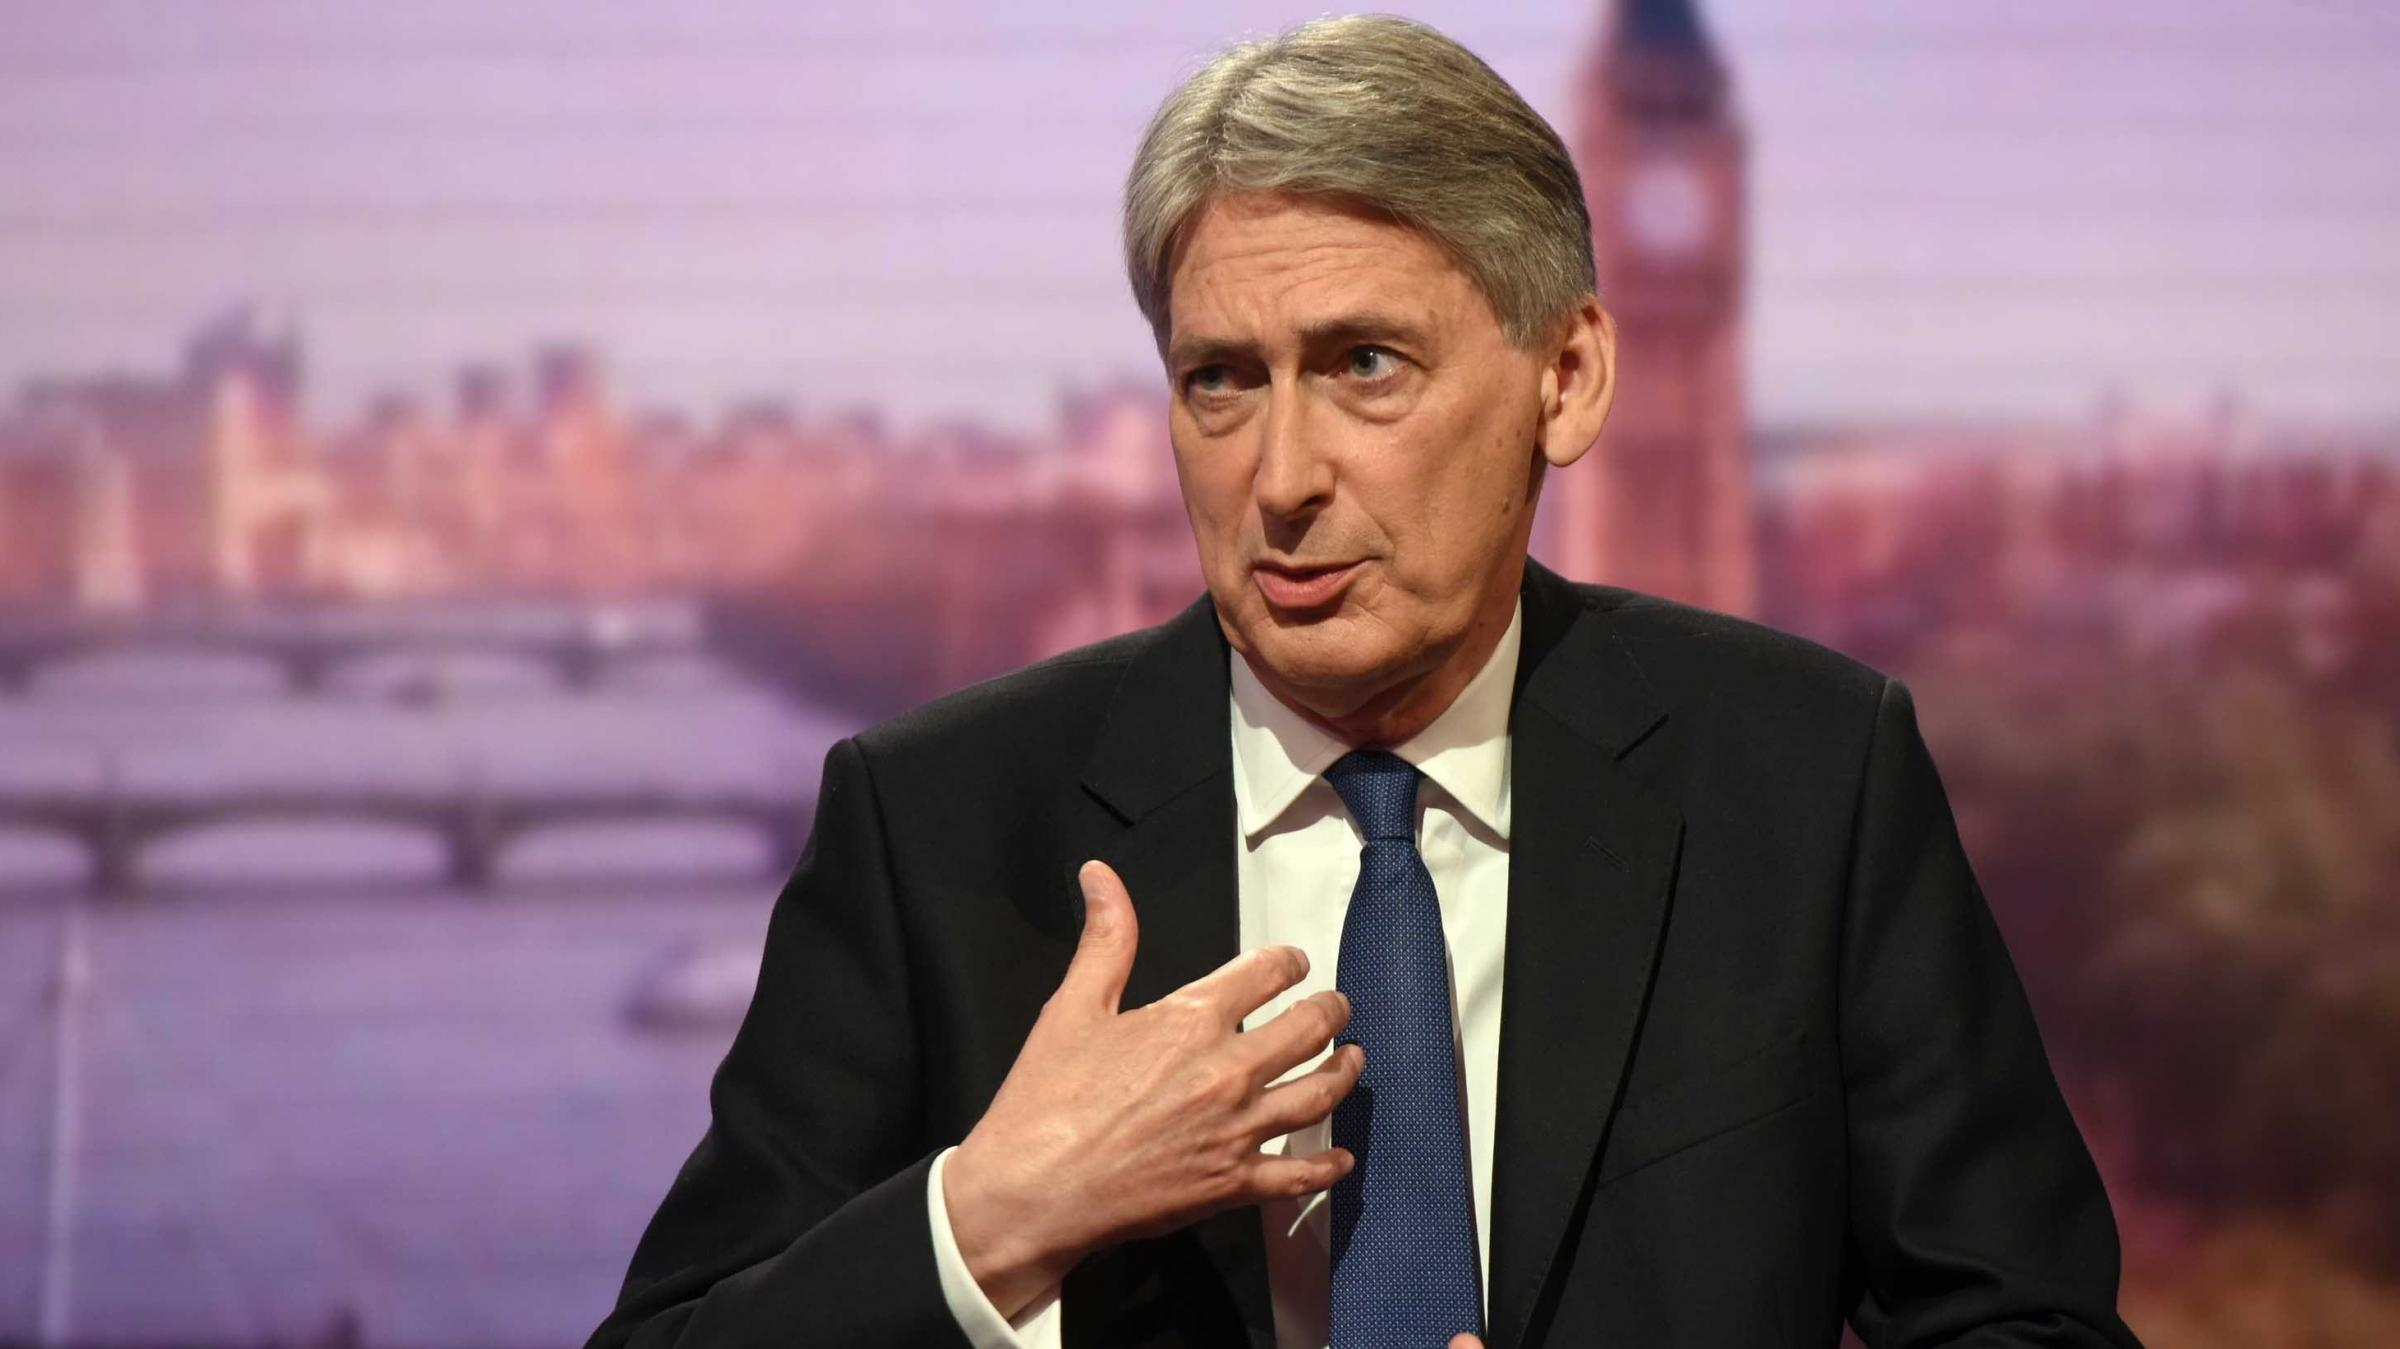 Chancellor Philip Hammond warns: We must avoid Brexit 'cliff edge'